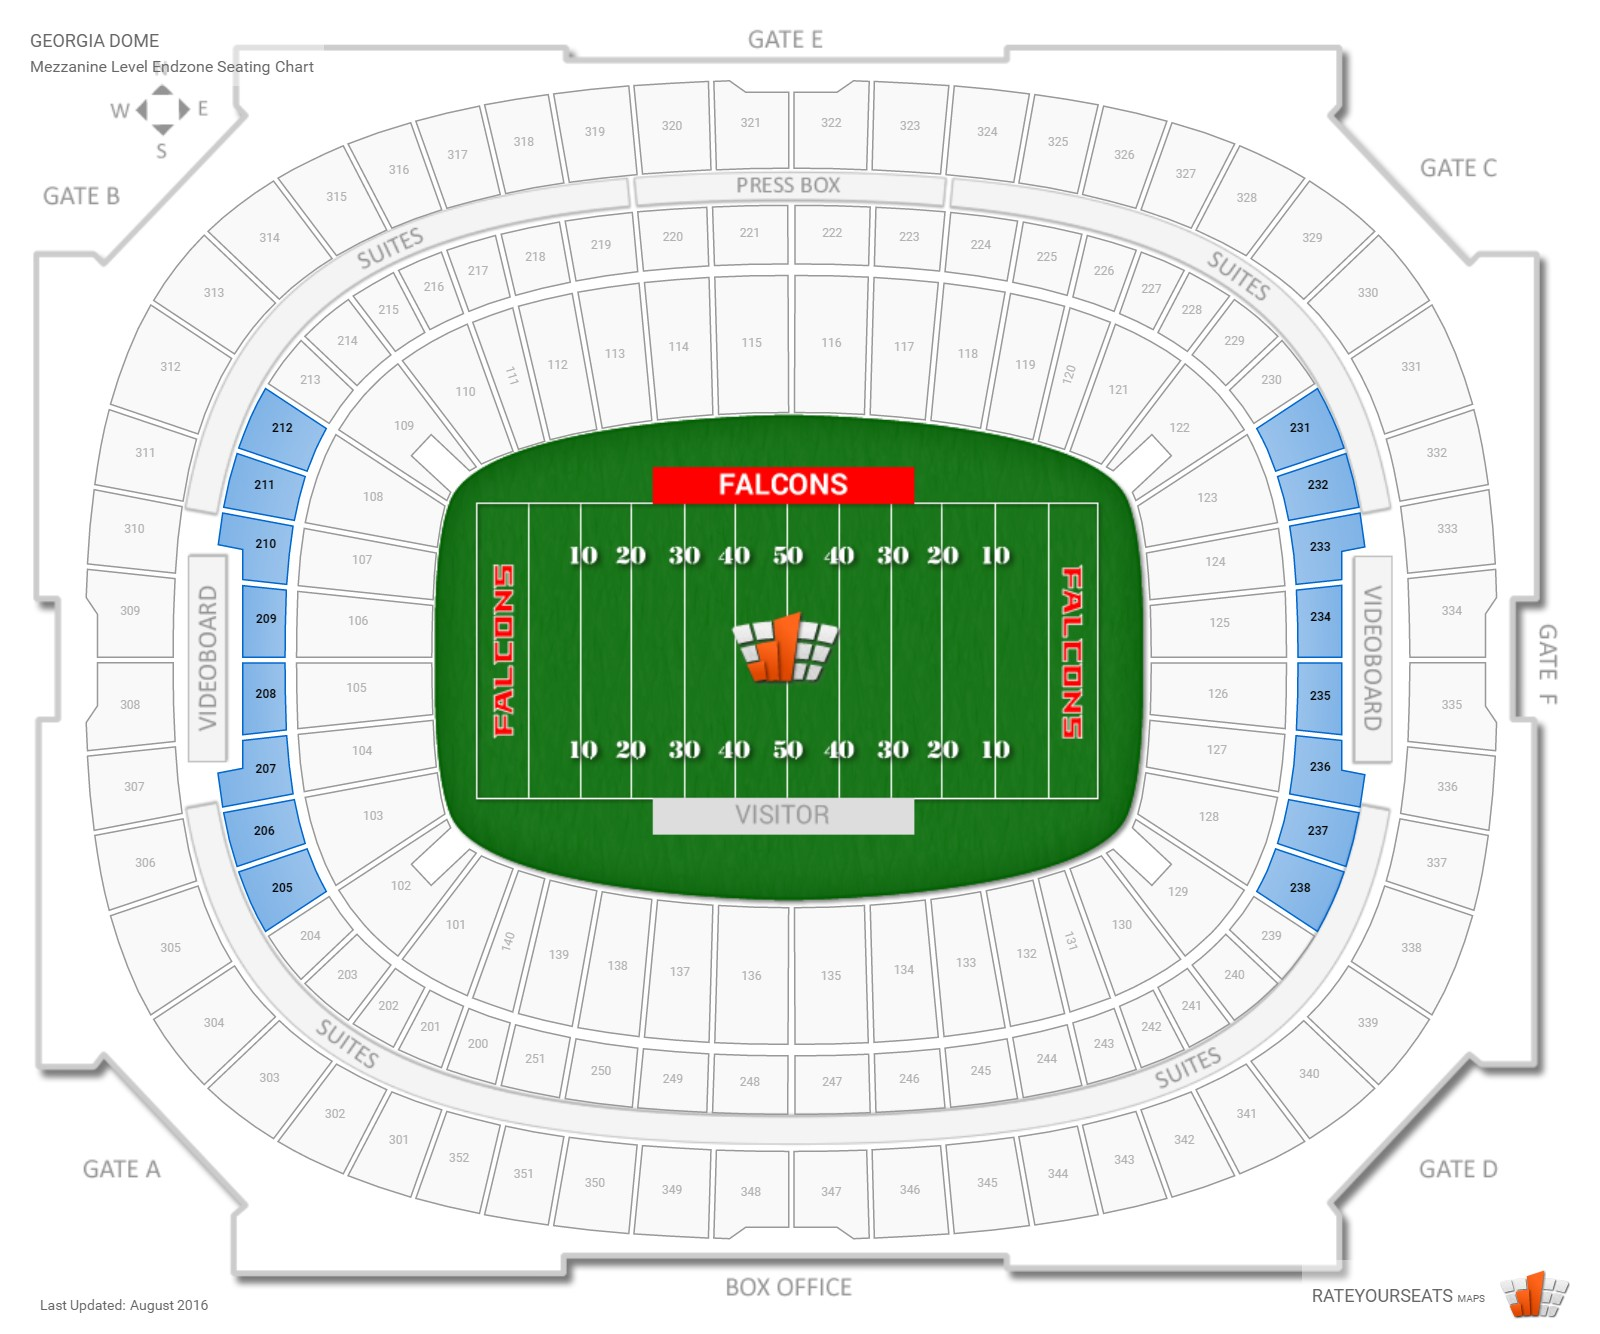 Georgia Dome Mezzanine Level Endzone seating chart